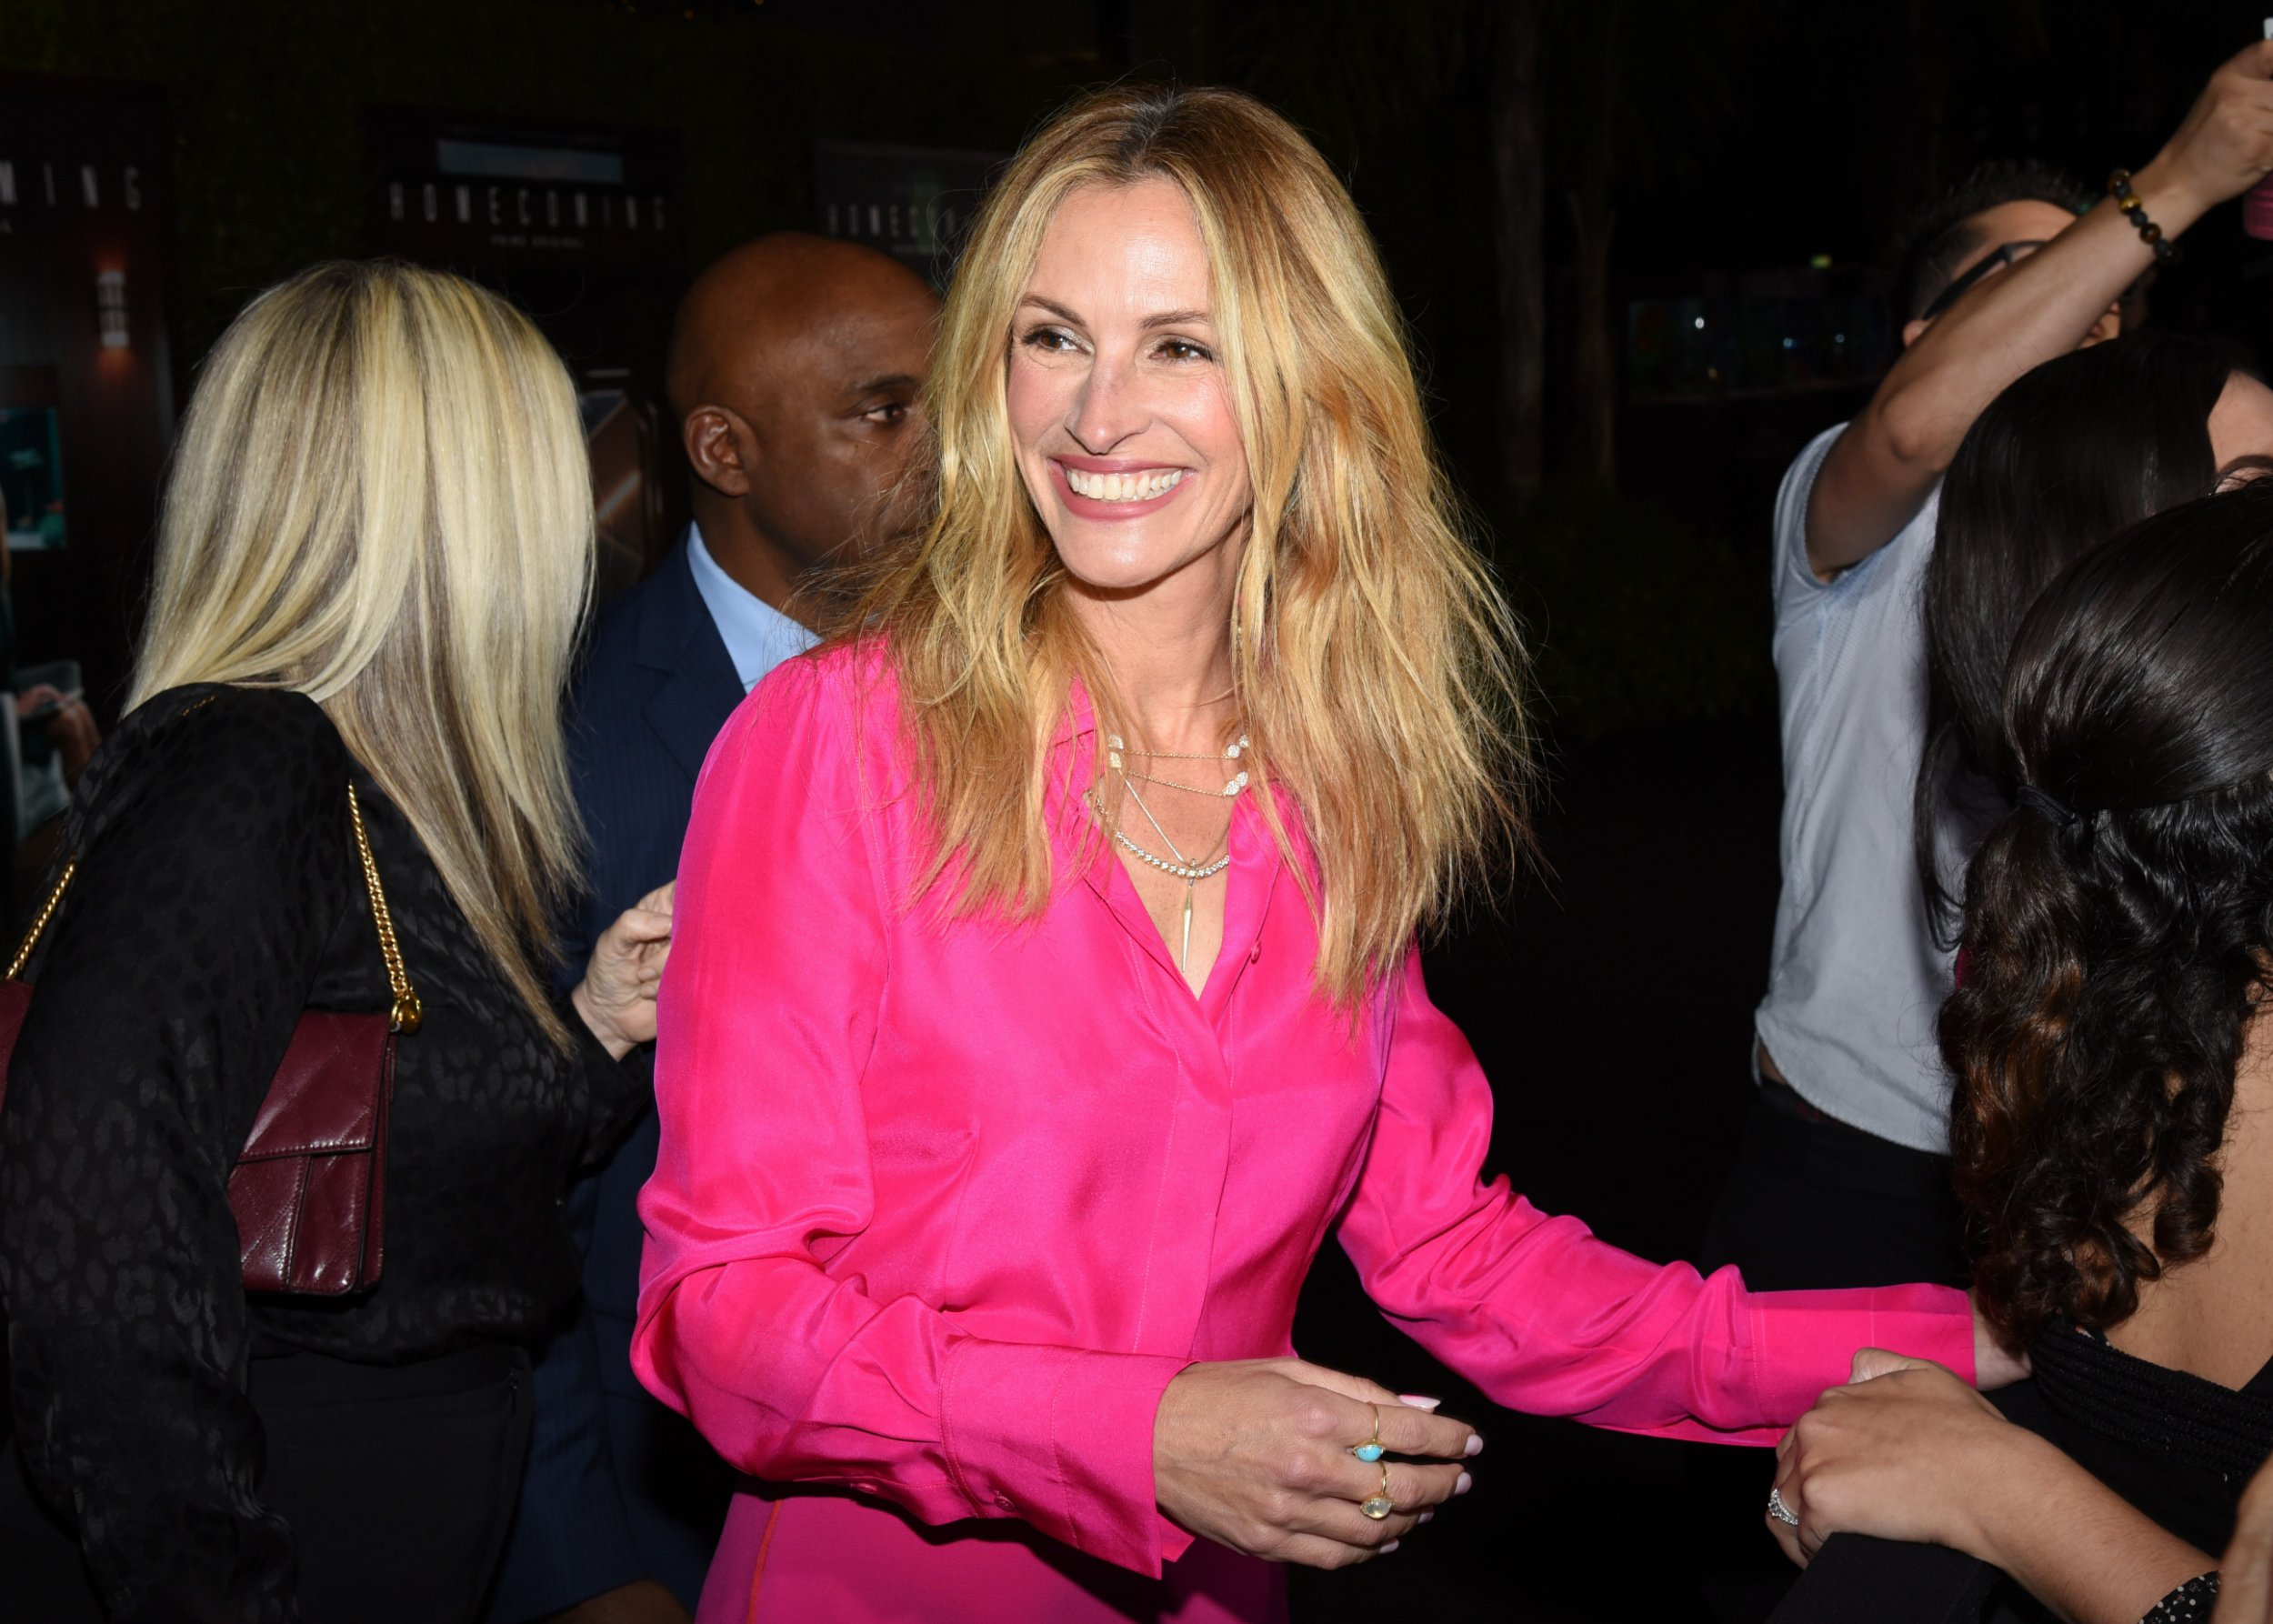 Julia Roberts describes age discrimination in Hollywood as 'bulls***'